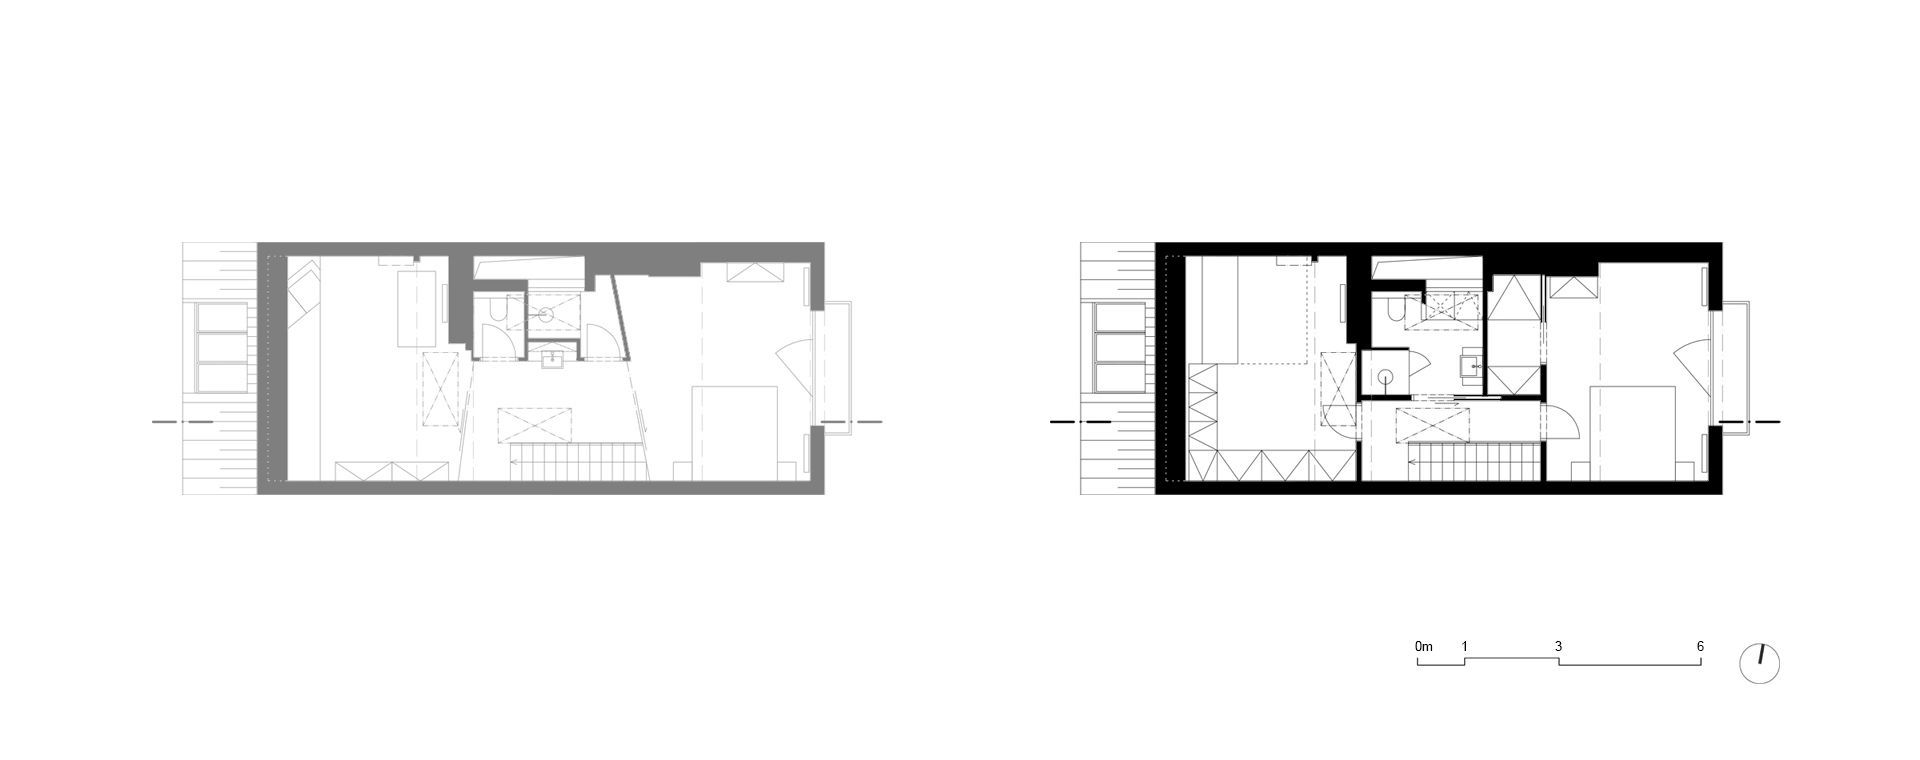 Scheme of changes of the second floor of the apartment